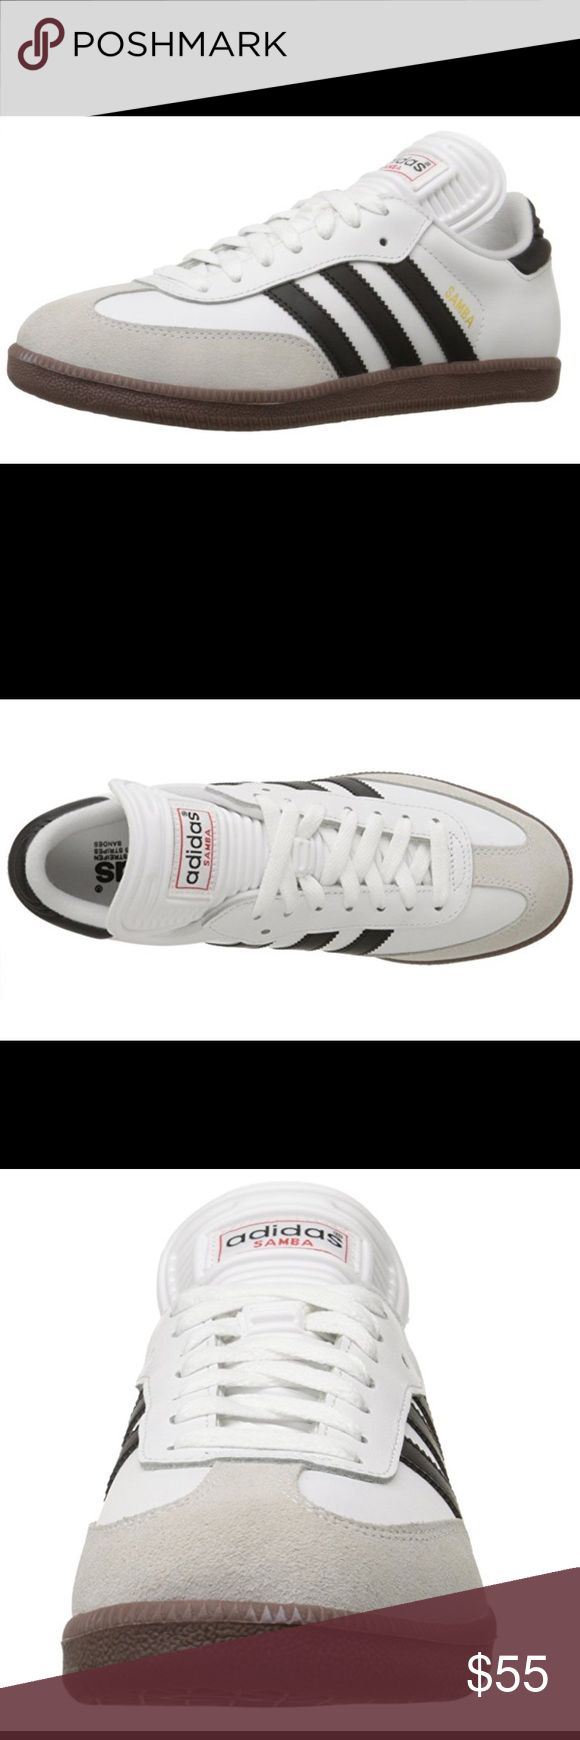 Adidas sneakers - white sambas size 7 M / 9 W Never worn, perfect condition, white sambas with an off-white toe, black stripes and neutral sole. Sambas are unisex and are sold in men's sizes. Adidas Shoes Athletic Shoes